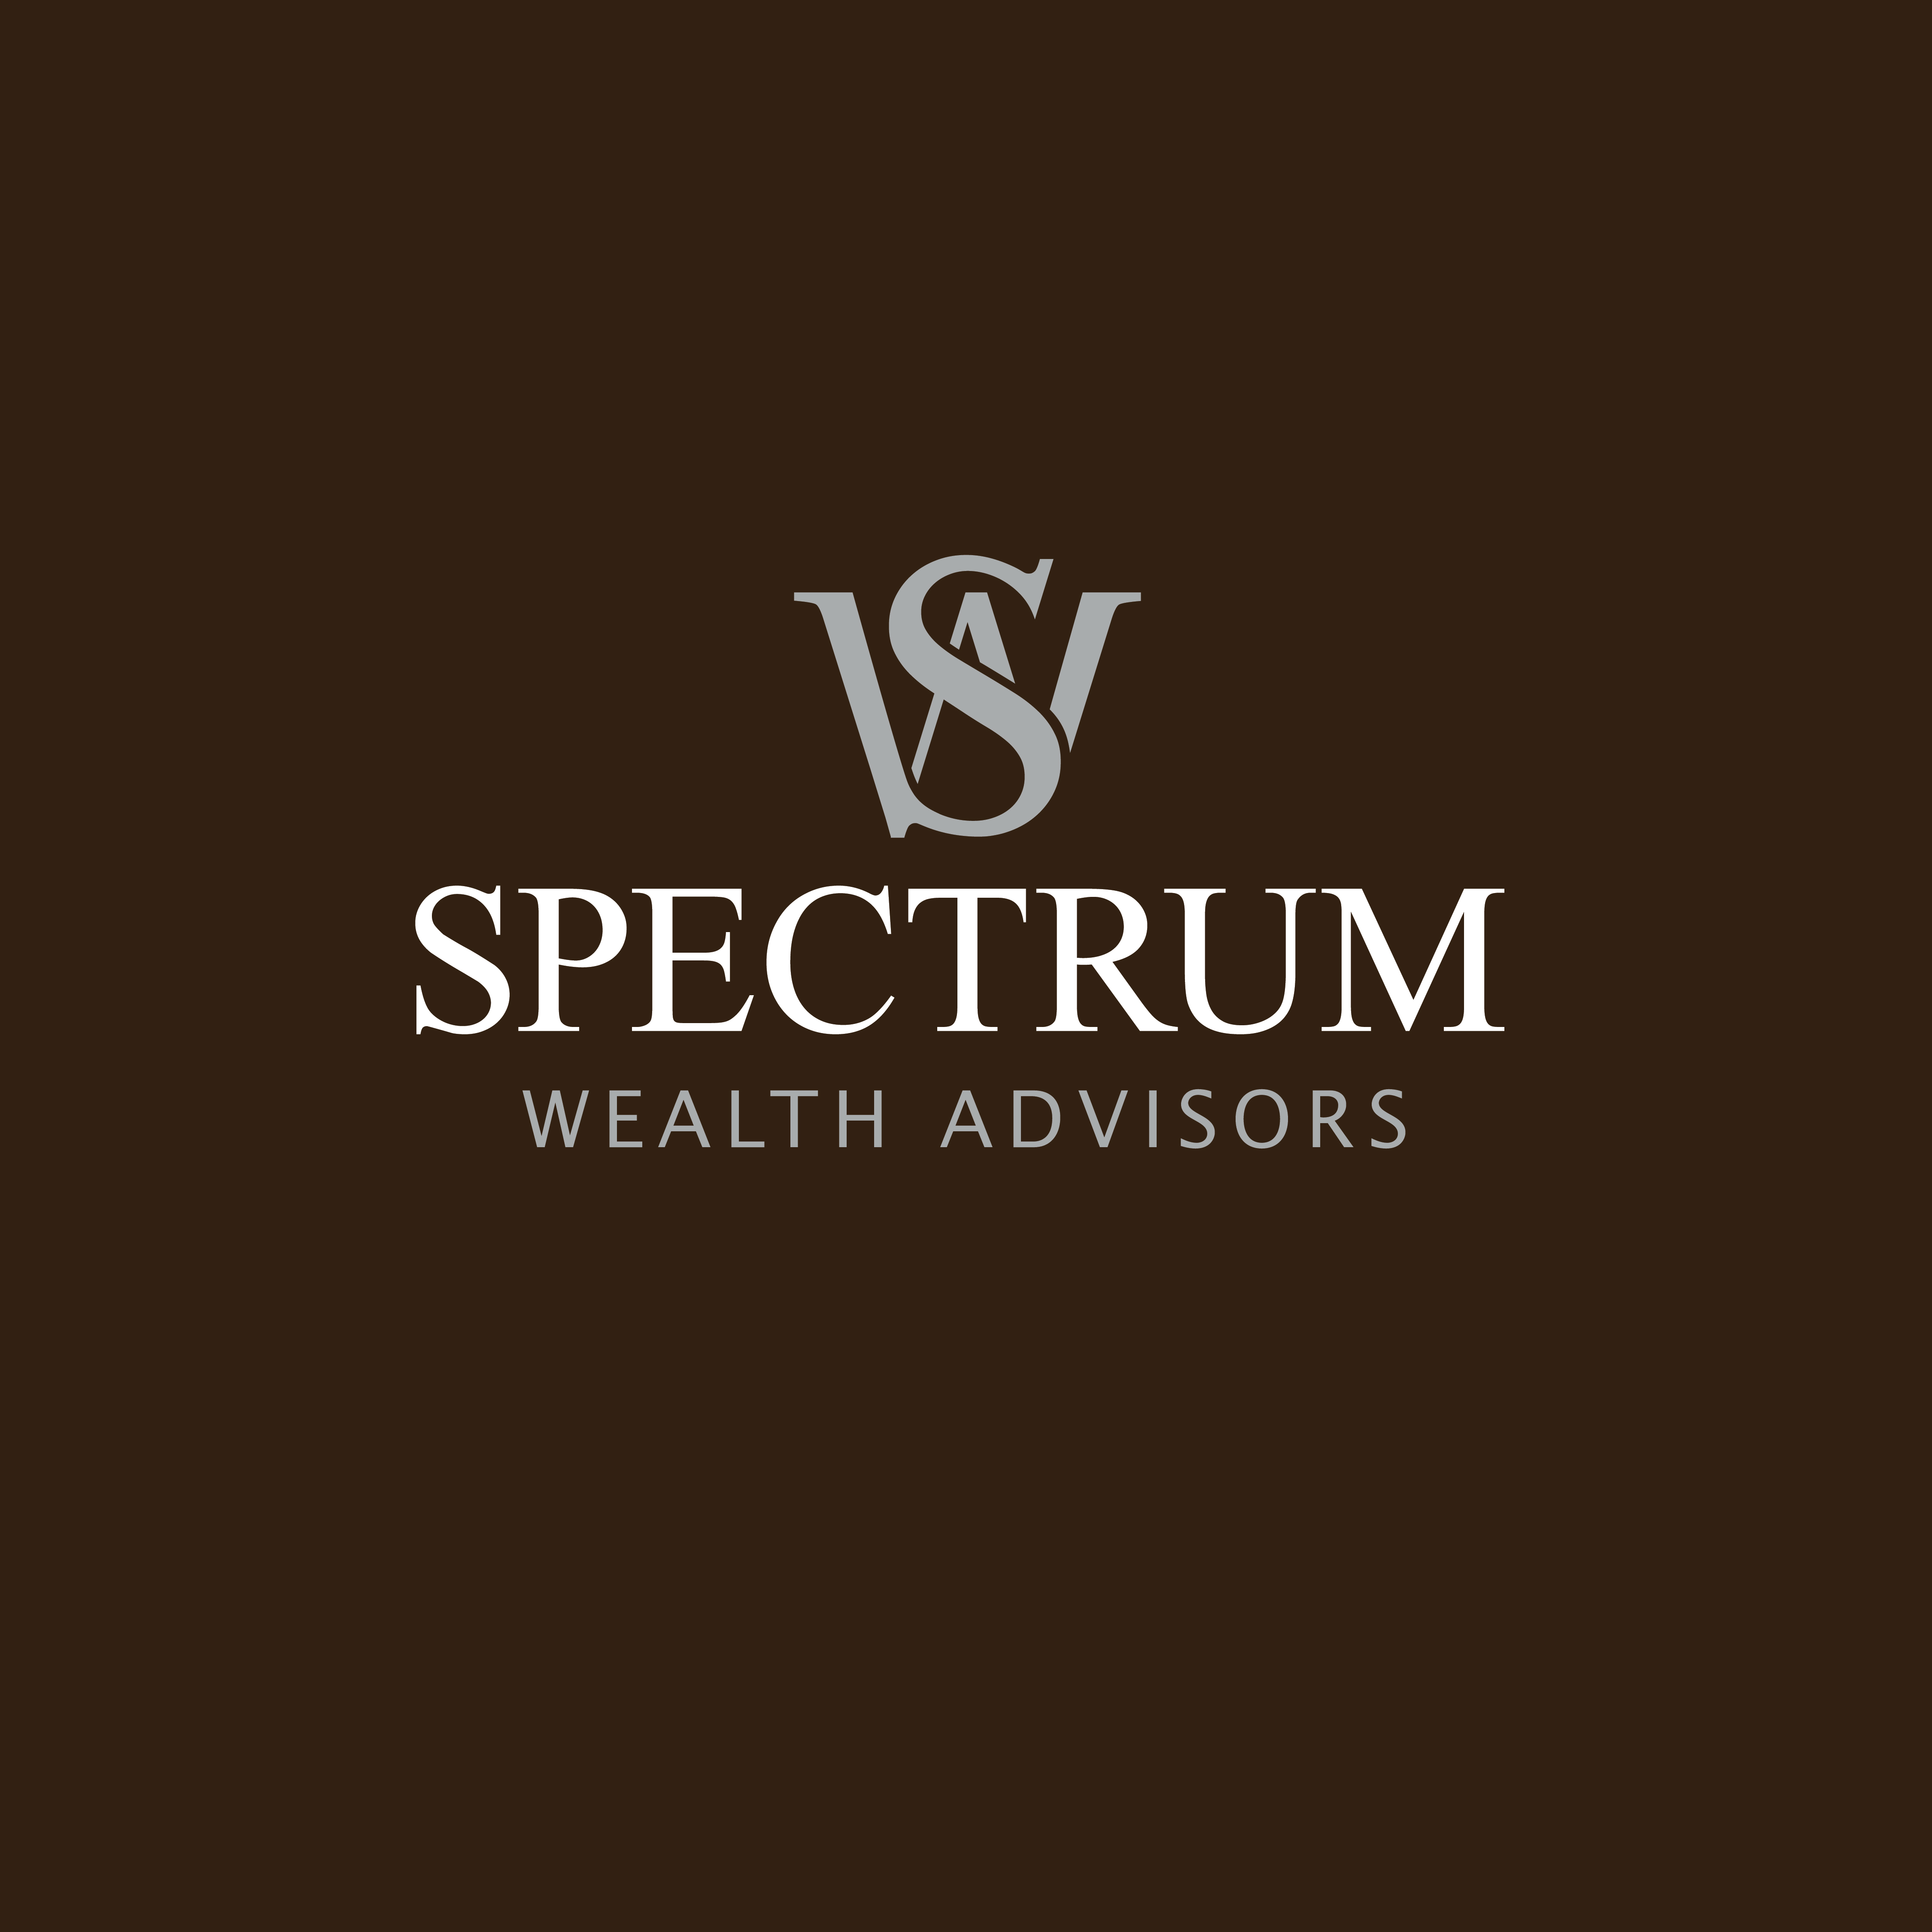 Spectrum Wealth Advisors | Identity